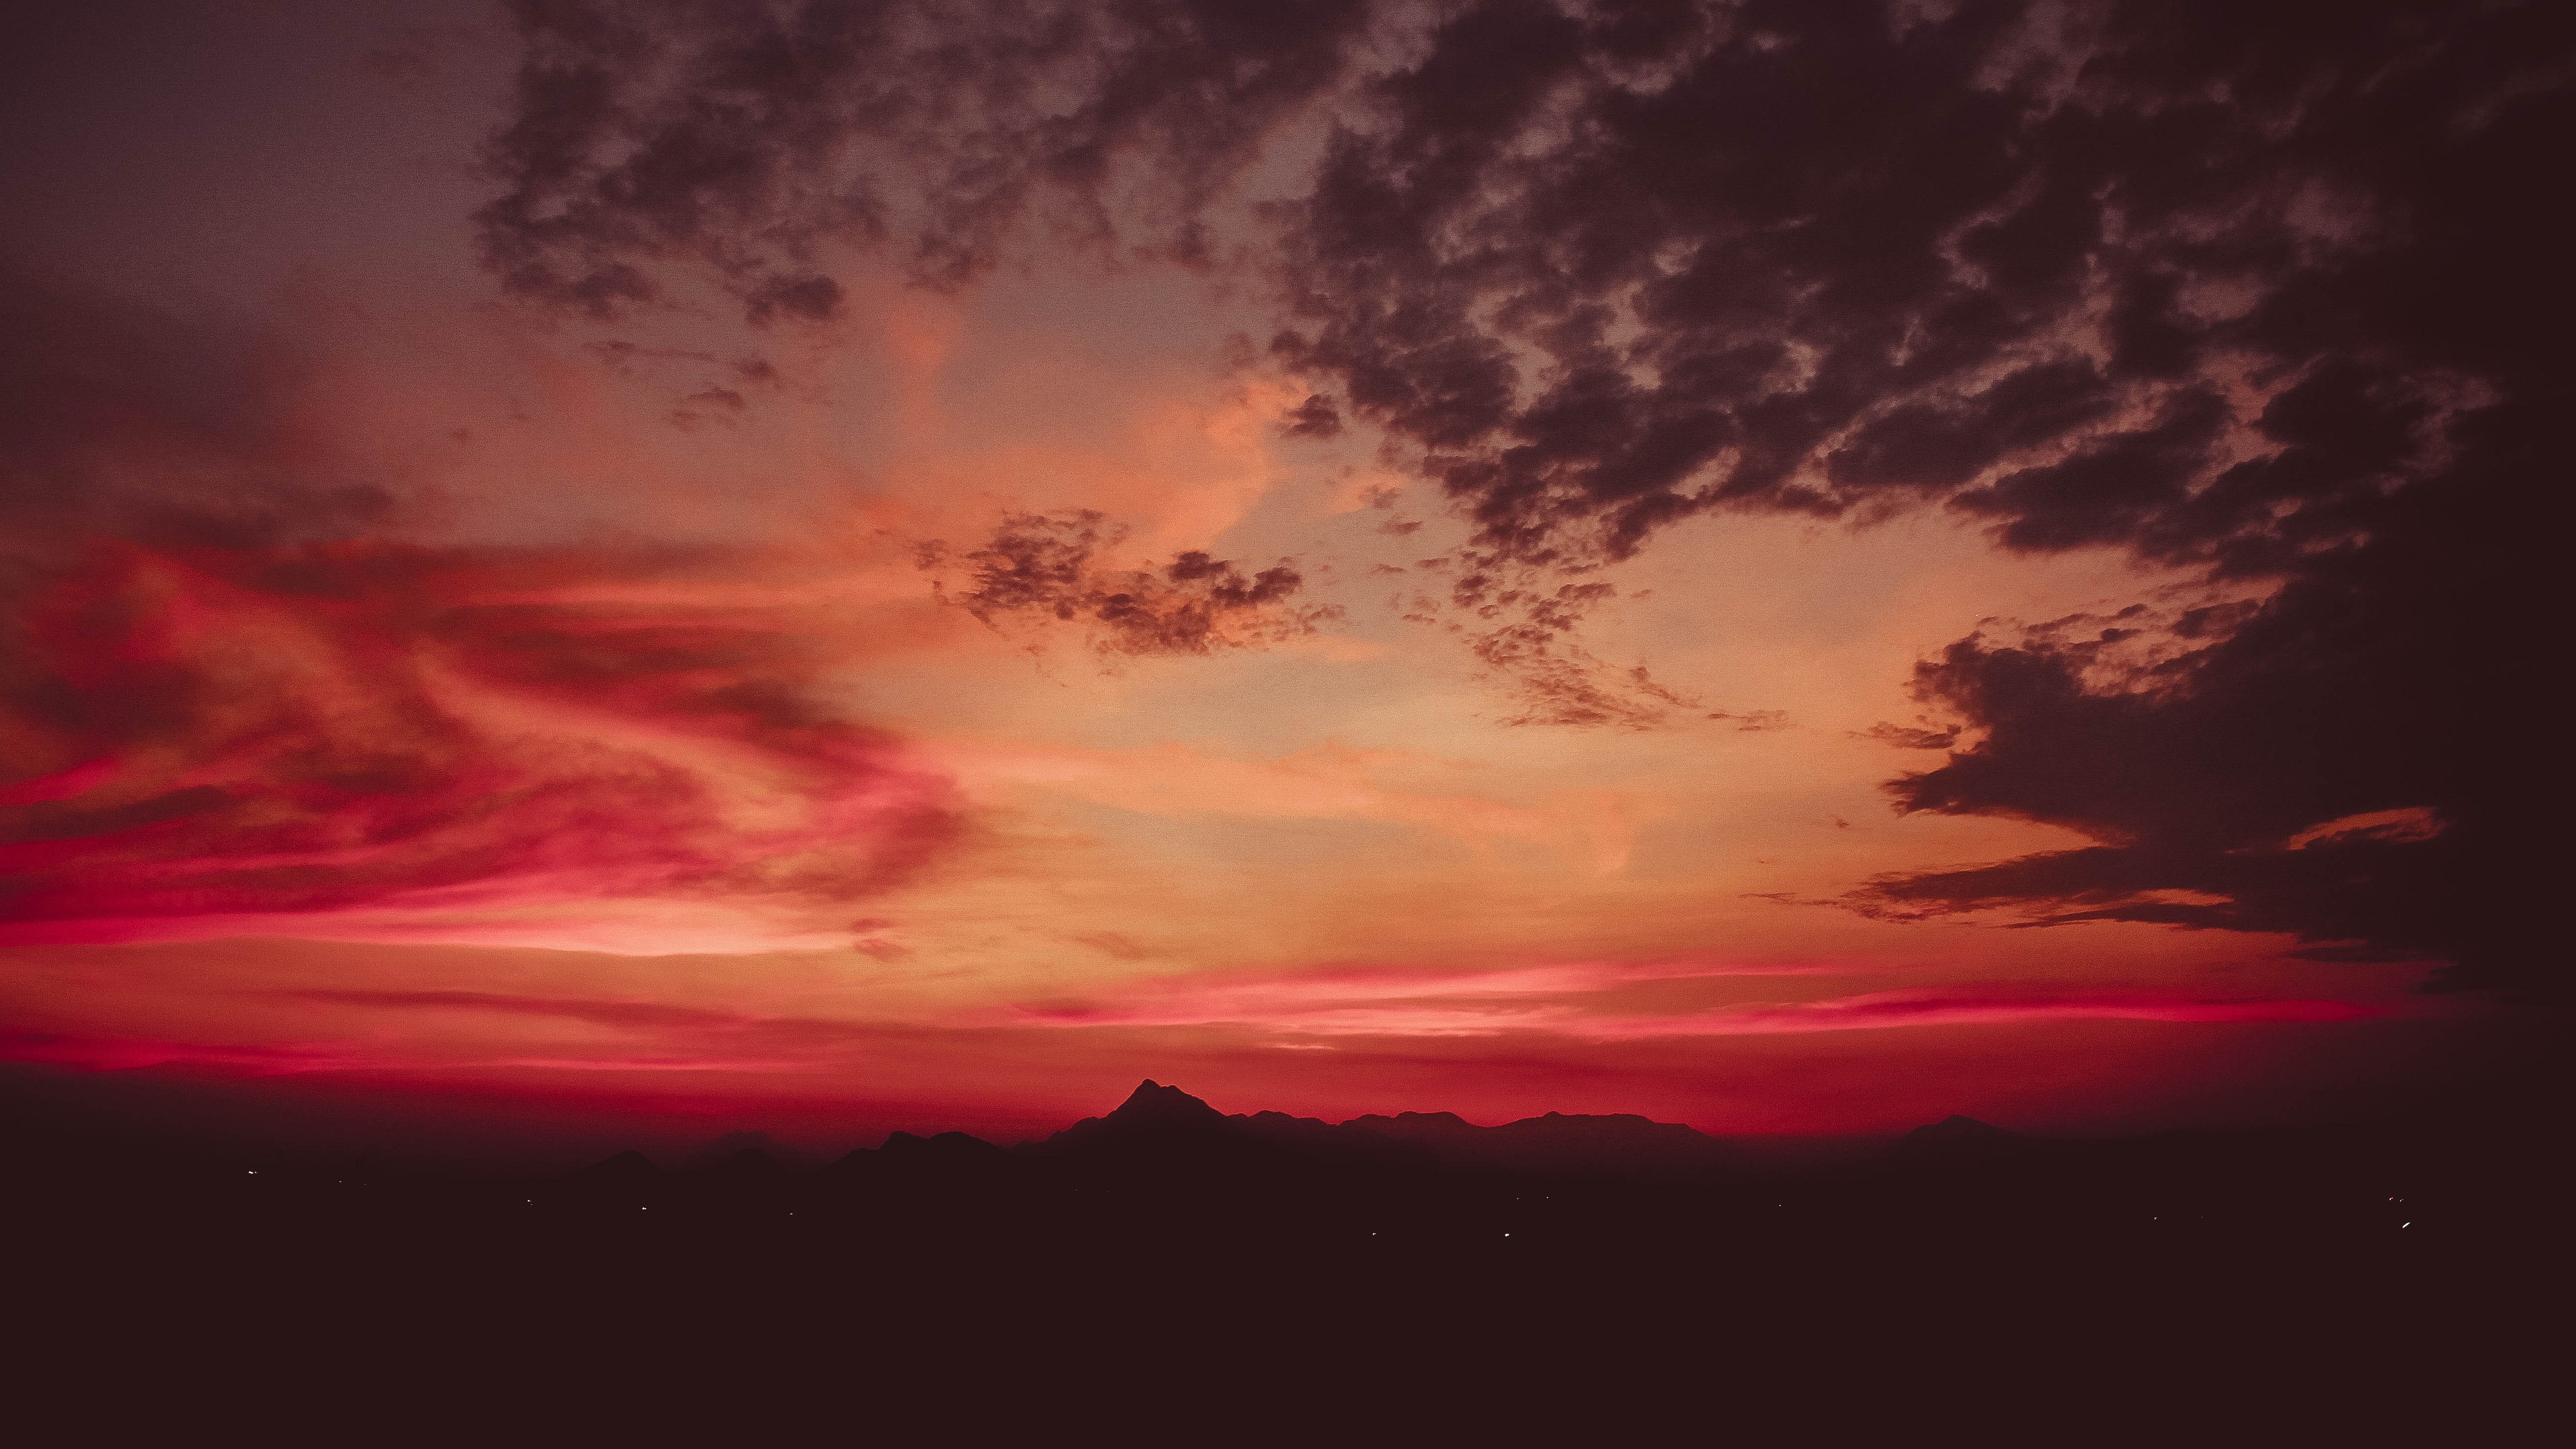 red sky nature mountains 5k 1540132876 - Red Sky Nature Mountains 5k - sky wallpapers, nature wallpapers, mountains wallpapers, hd-wallpapers, 5k wallpapers, 4k-wallpapers